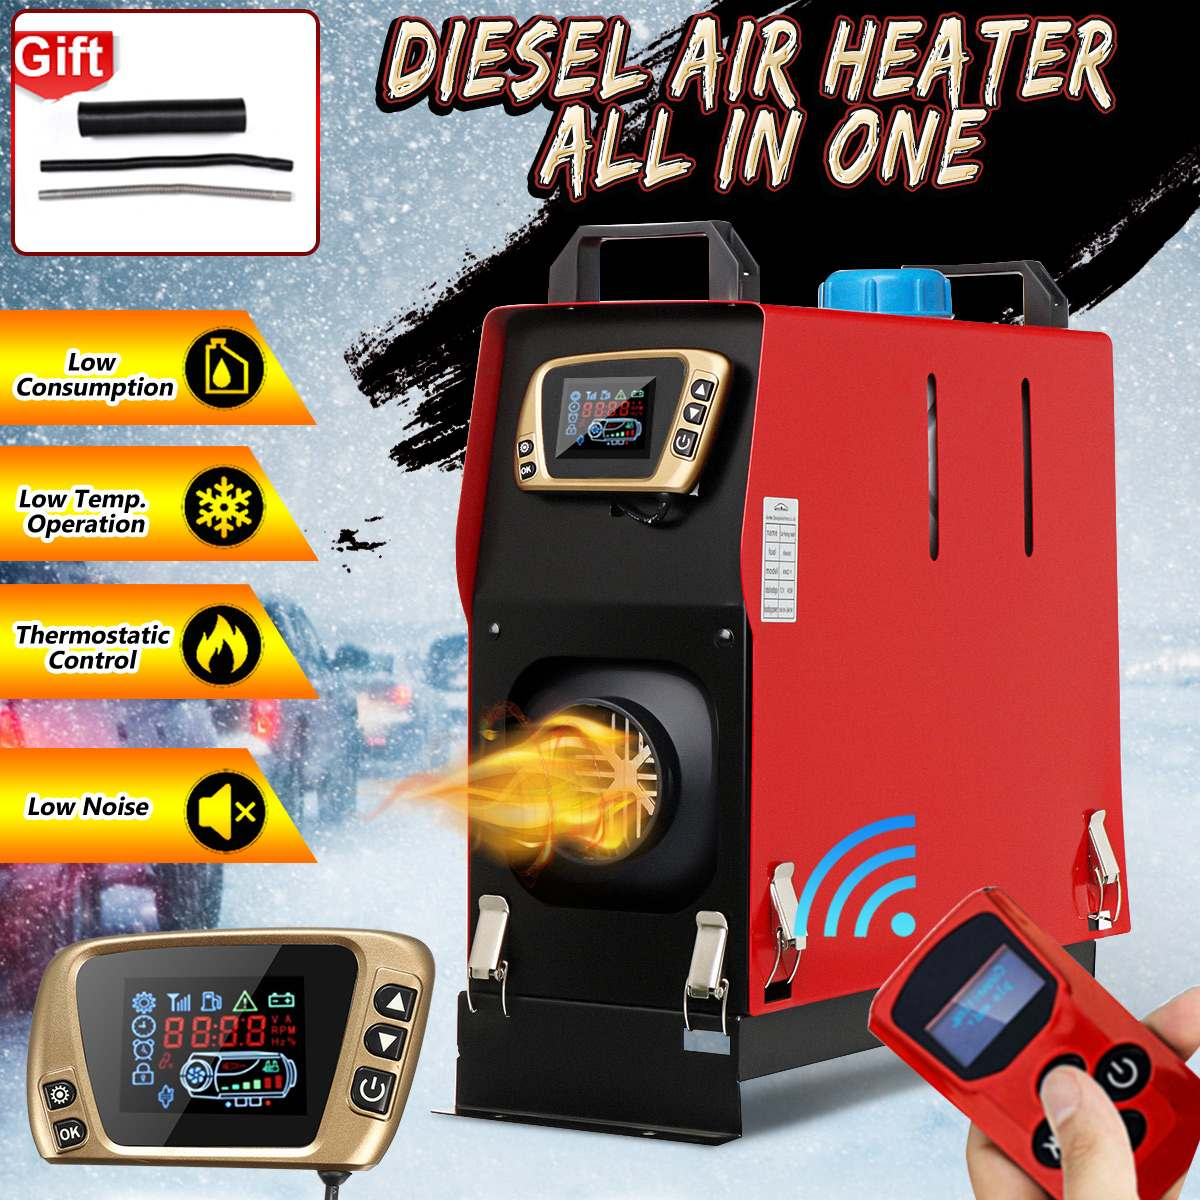 All In One Diesel Air Heater Host 1-8KW Adjustable 12V 1 Hole LCD English Remote Control Integrated Parking Heater Machine